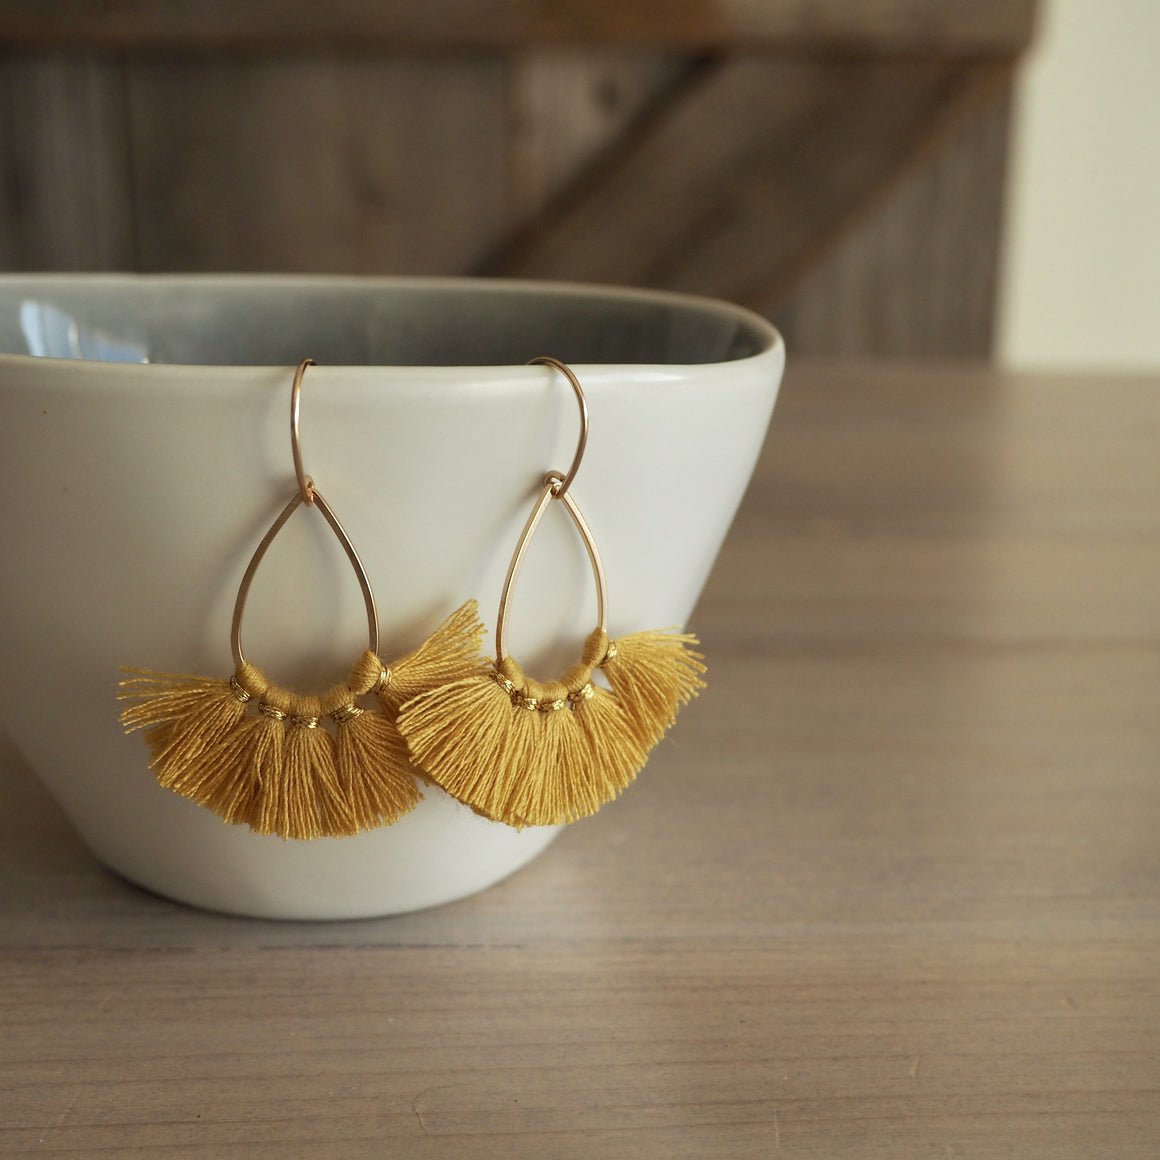 Mustard Yellow Tassel Earrings with 14K gold filled earwire